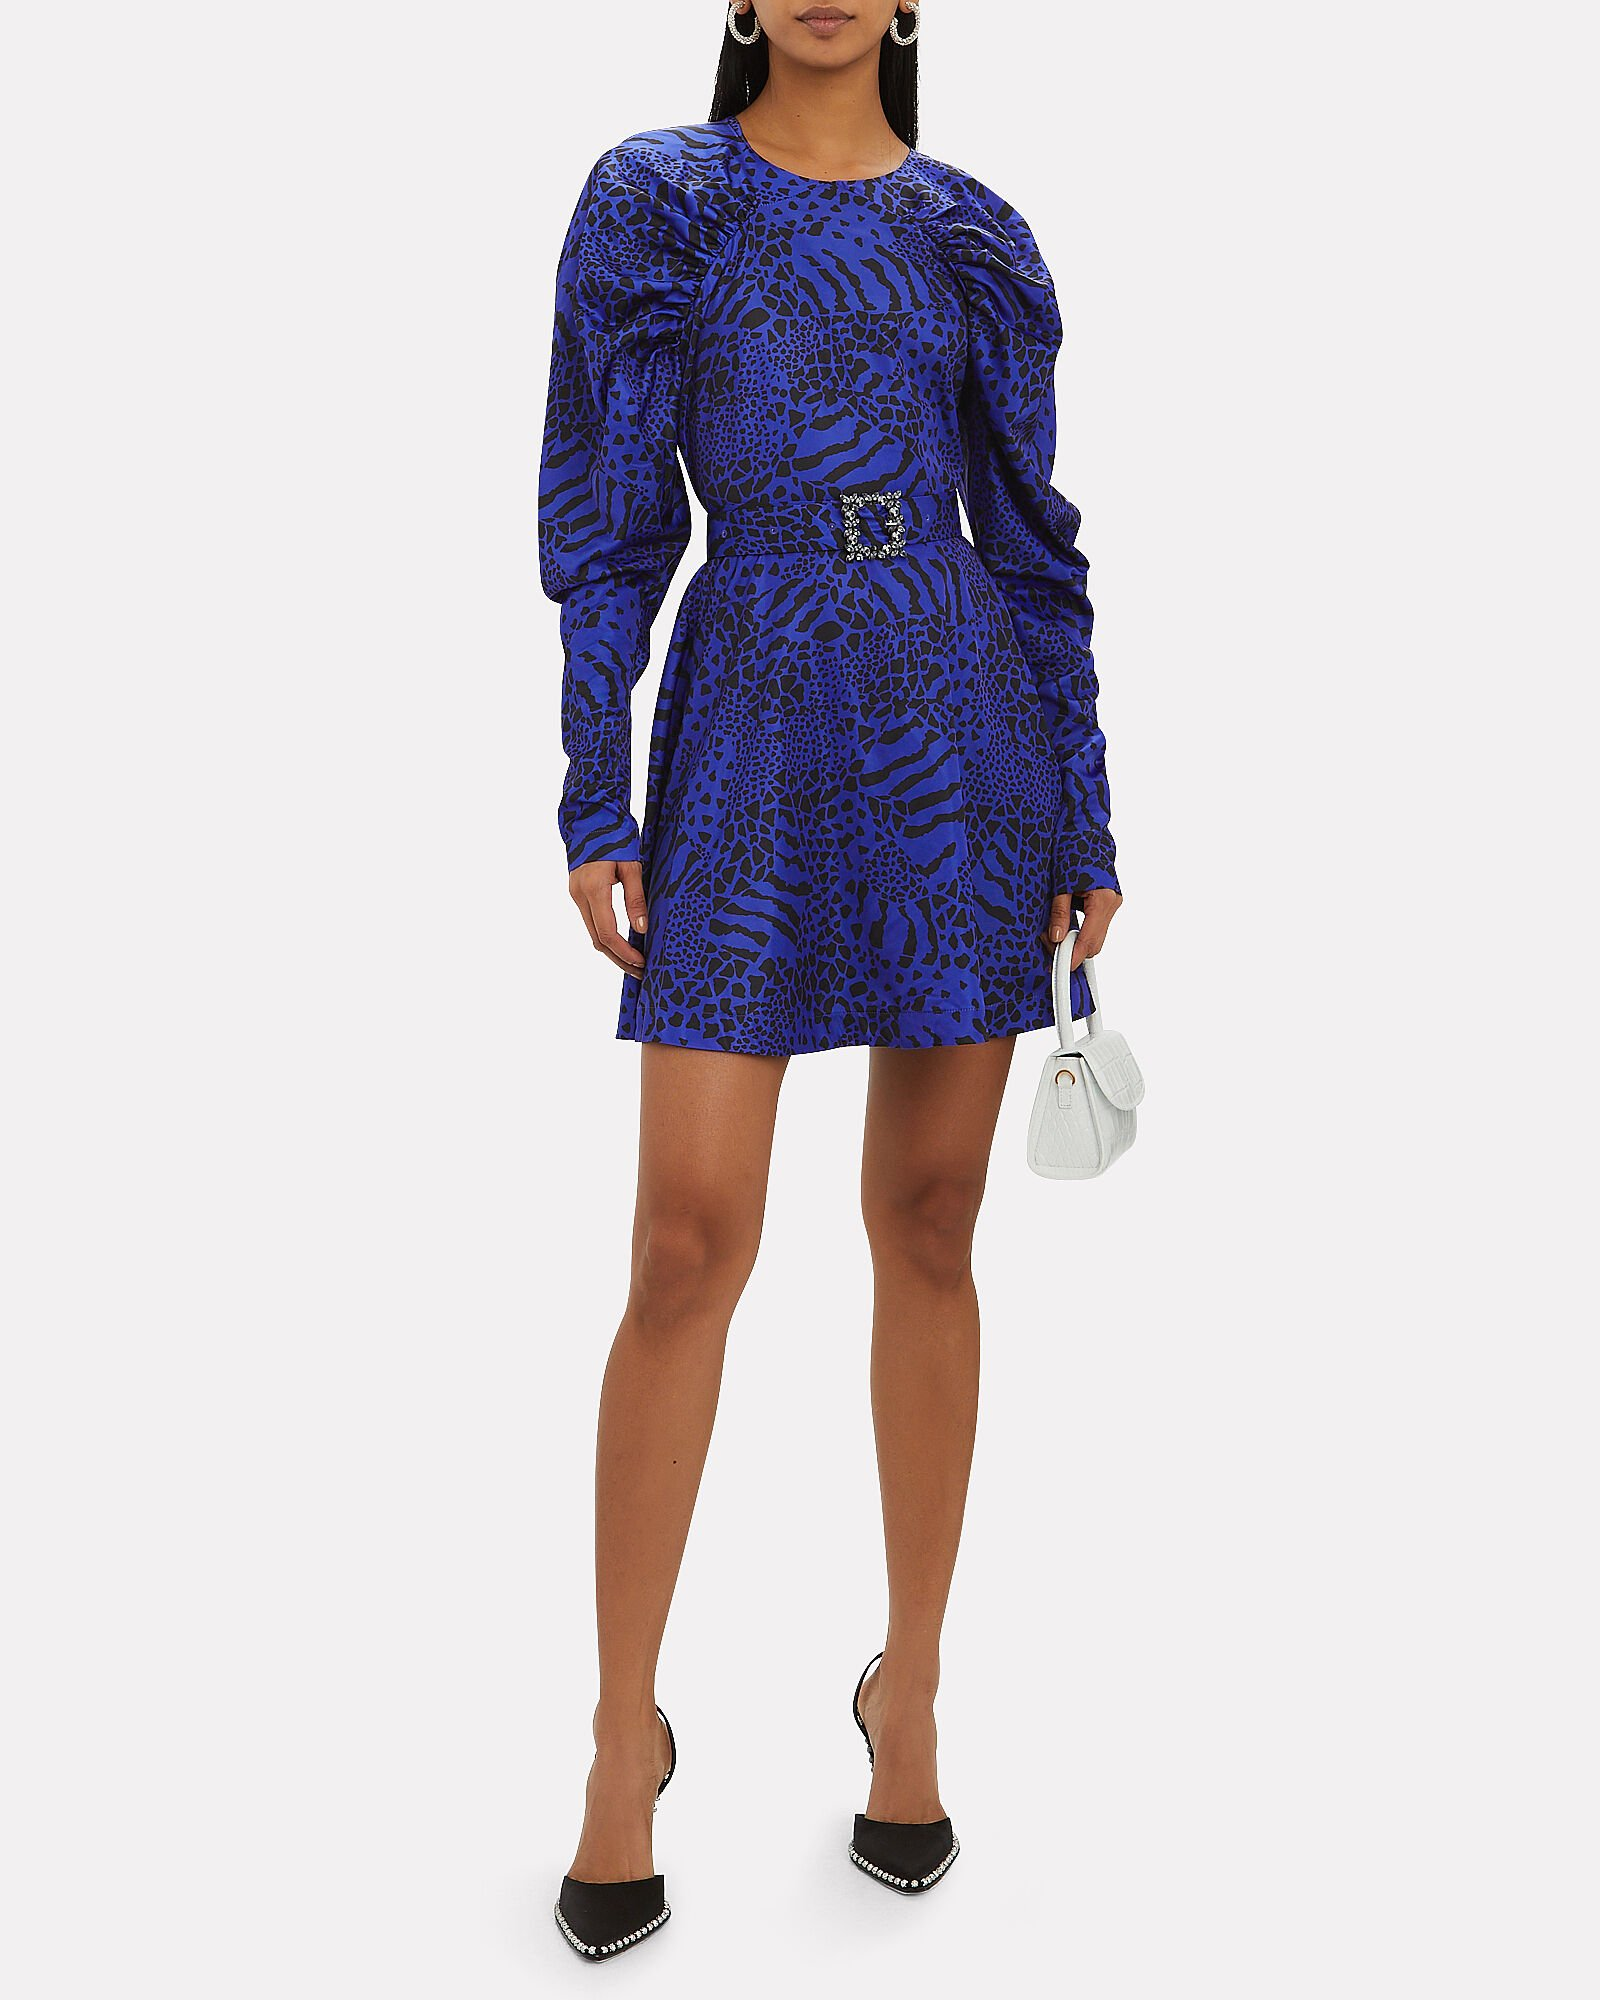 Tara Taffeta Mini Dress, BLUE/ANIMAL PRINT, hi-res